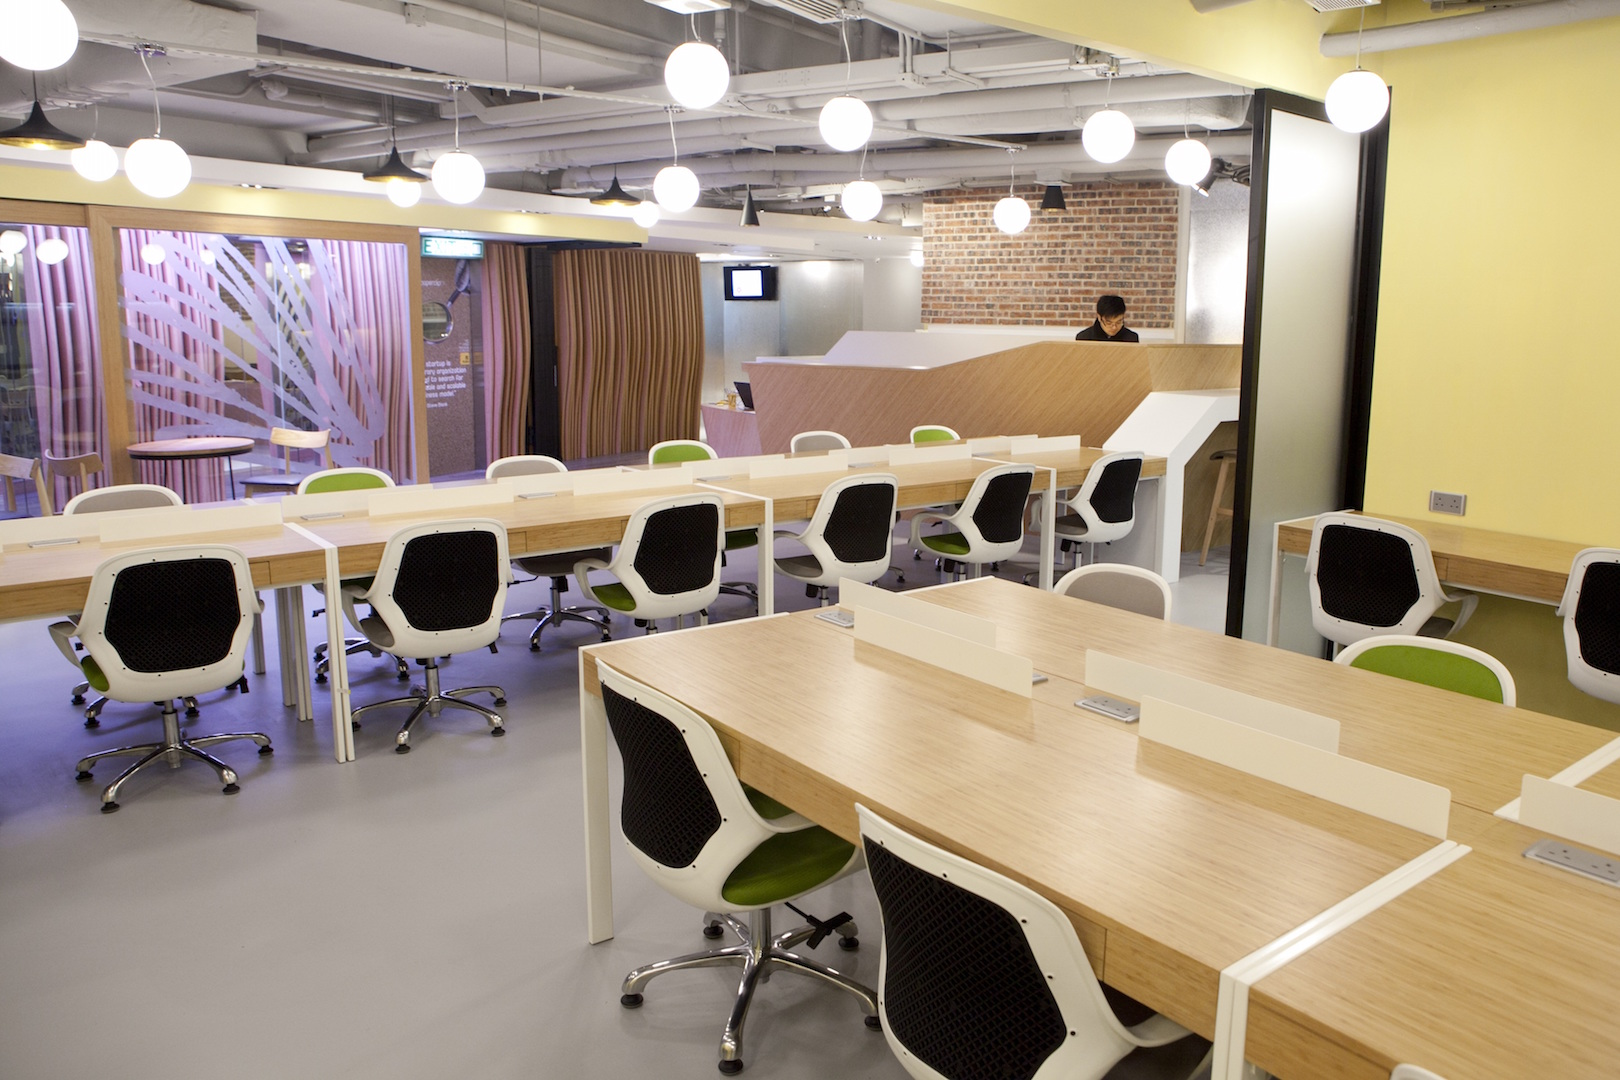 Kowrk Paperclip Shared Office Space Hong Kong